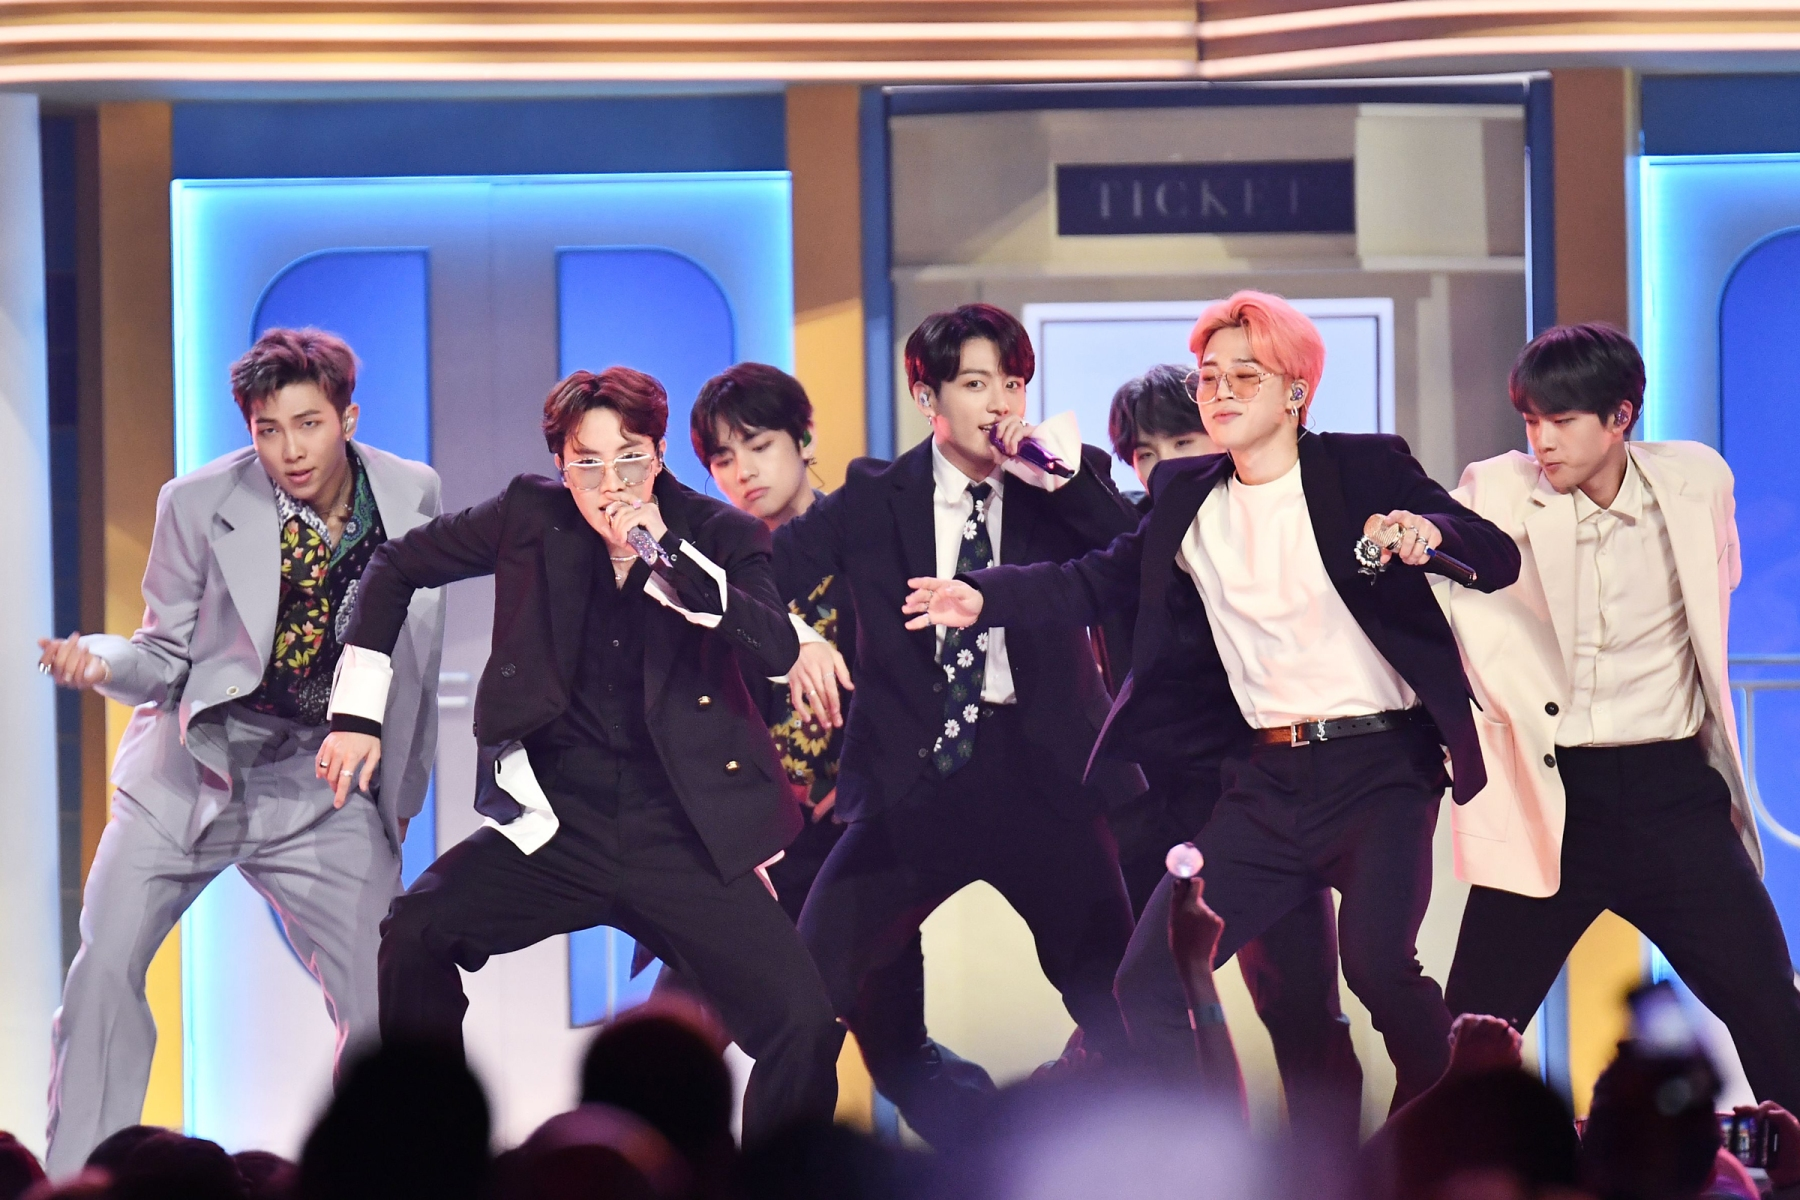 bts receive no grammy nominations rolling stone https www rollingstone com music music features bts no grammy nominations 914664